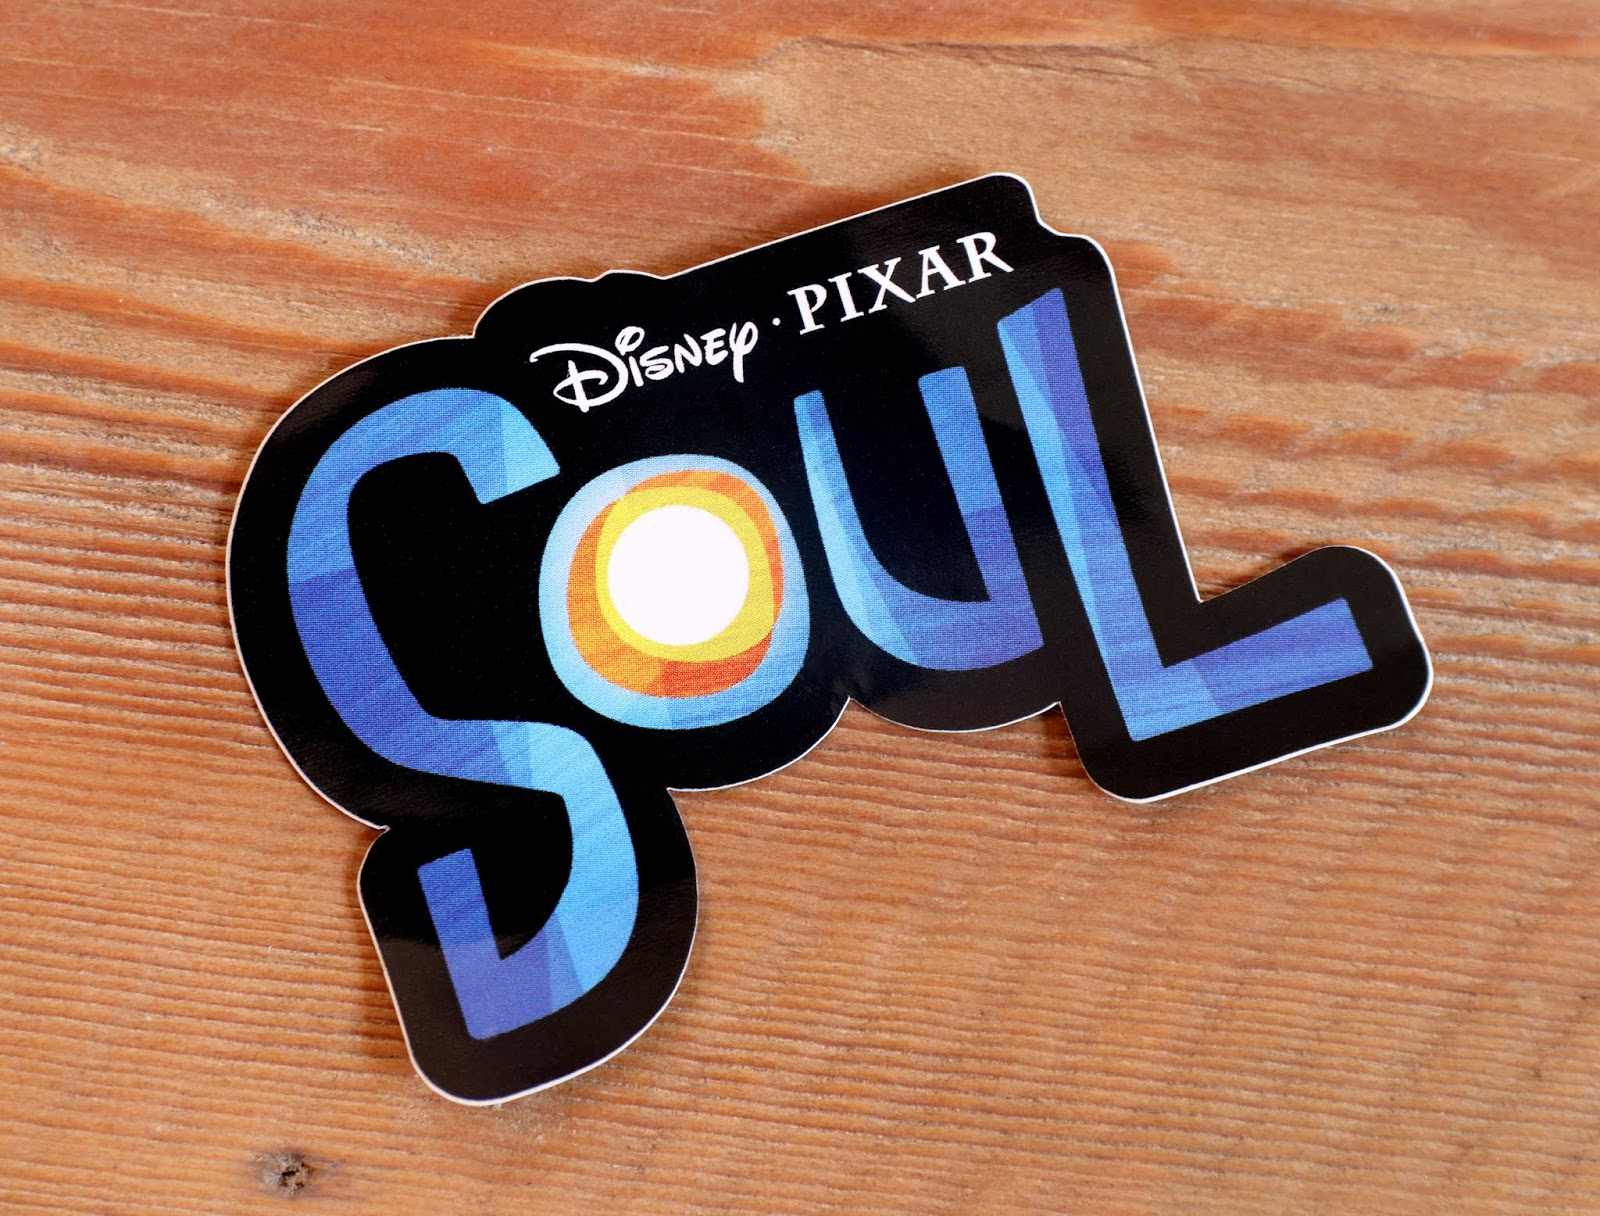 pixar soul logo sticker d23 expo 2019